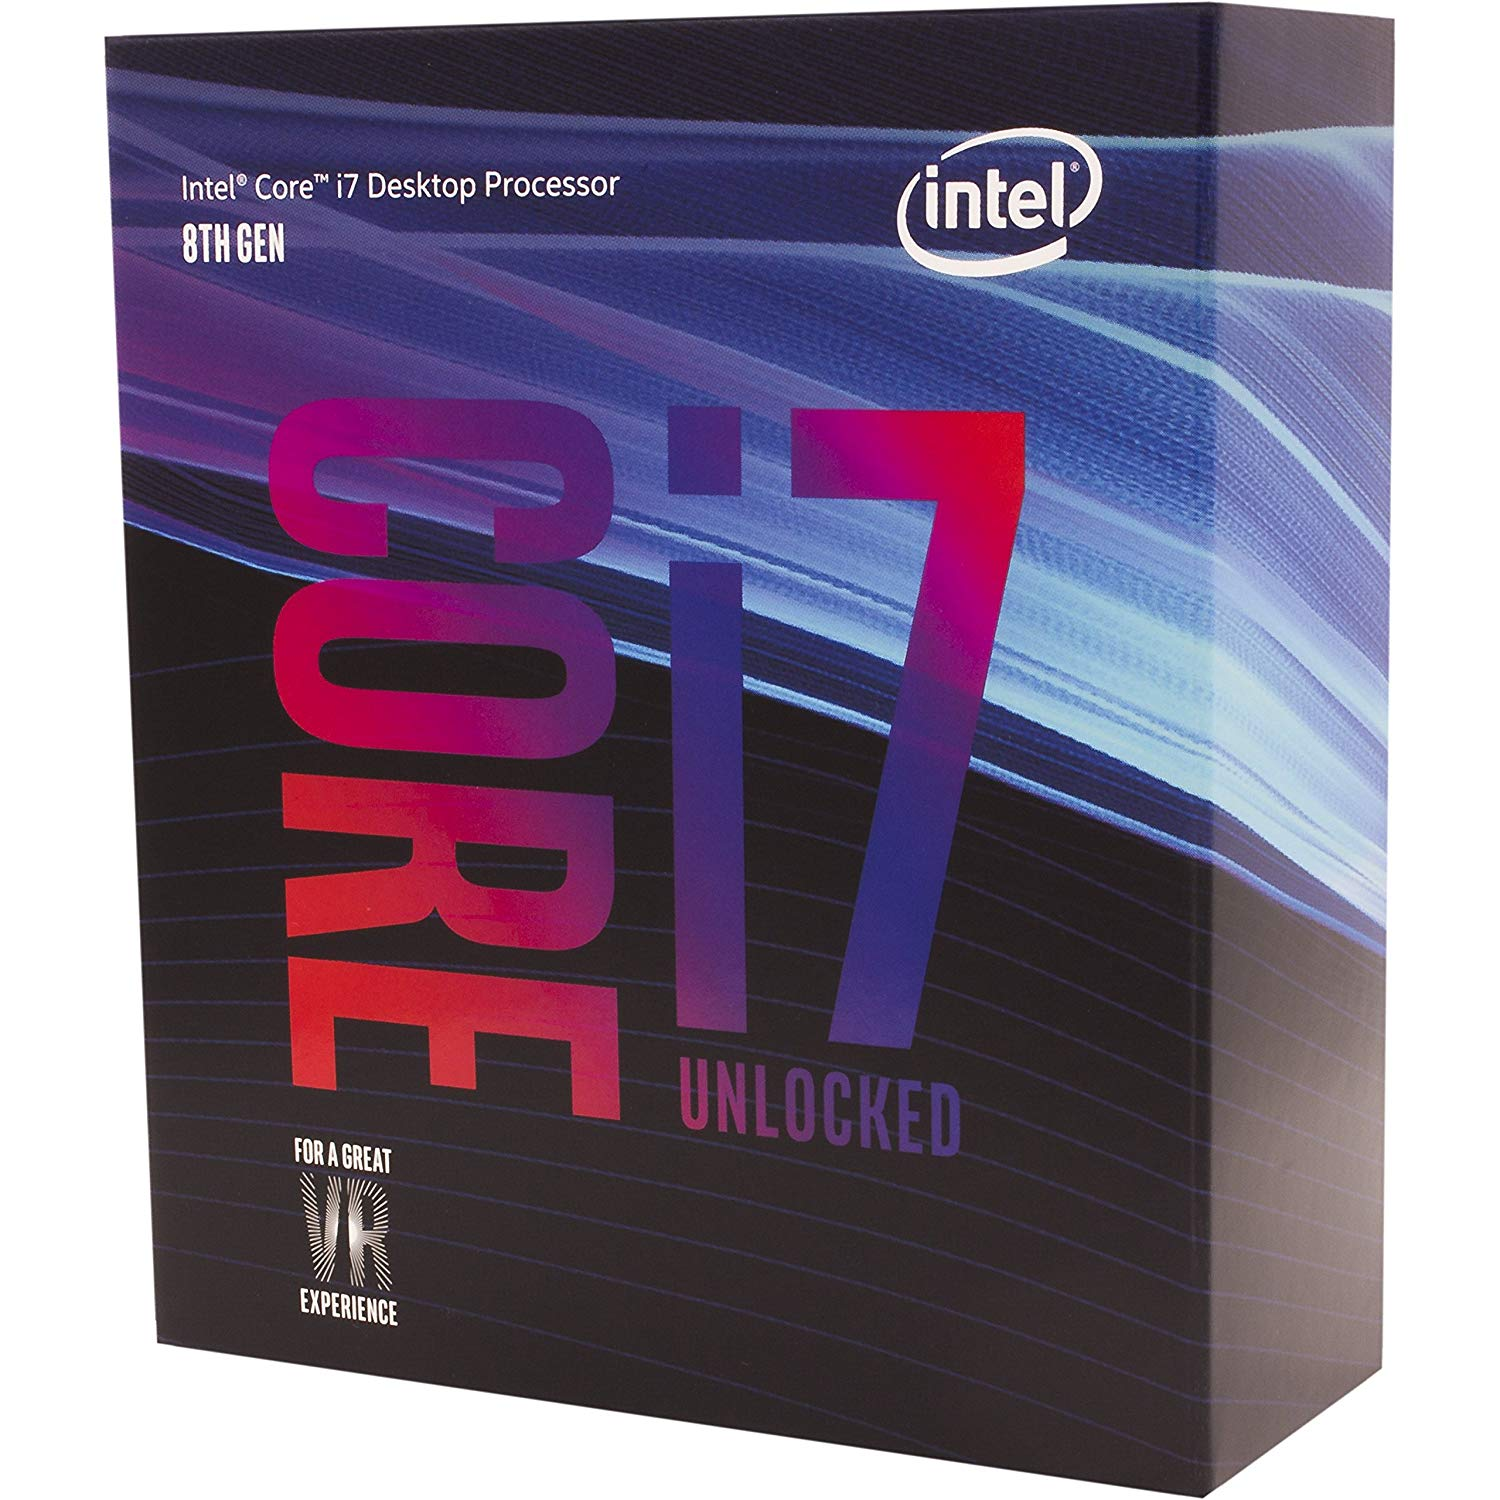 Intel Core i7-8700 3.2GHz 12Mo Smart Cache